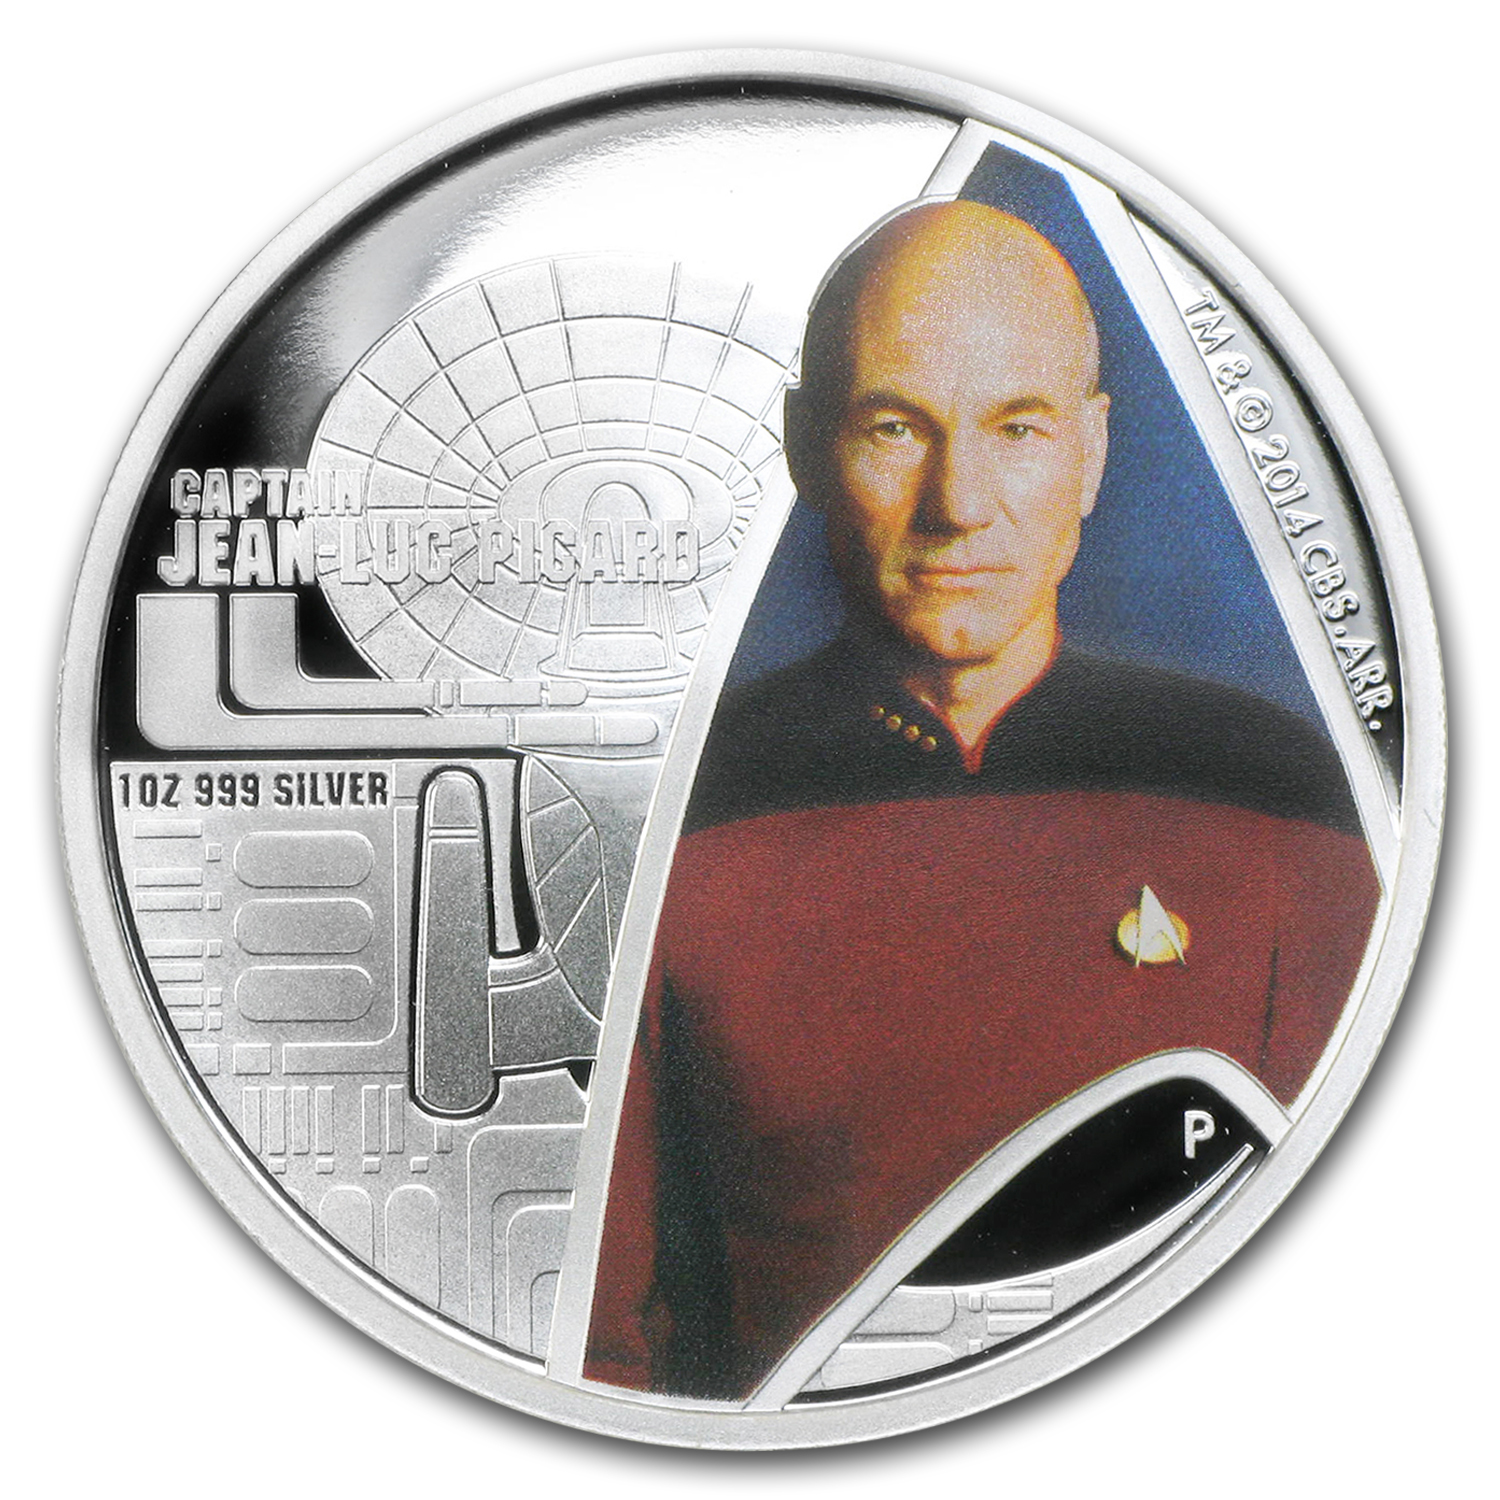 2015 Tuvalu 1 oz Silver Star Trek Colored Proof (Captain Picard)